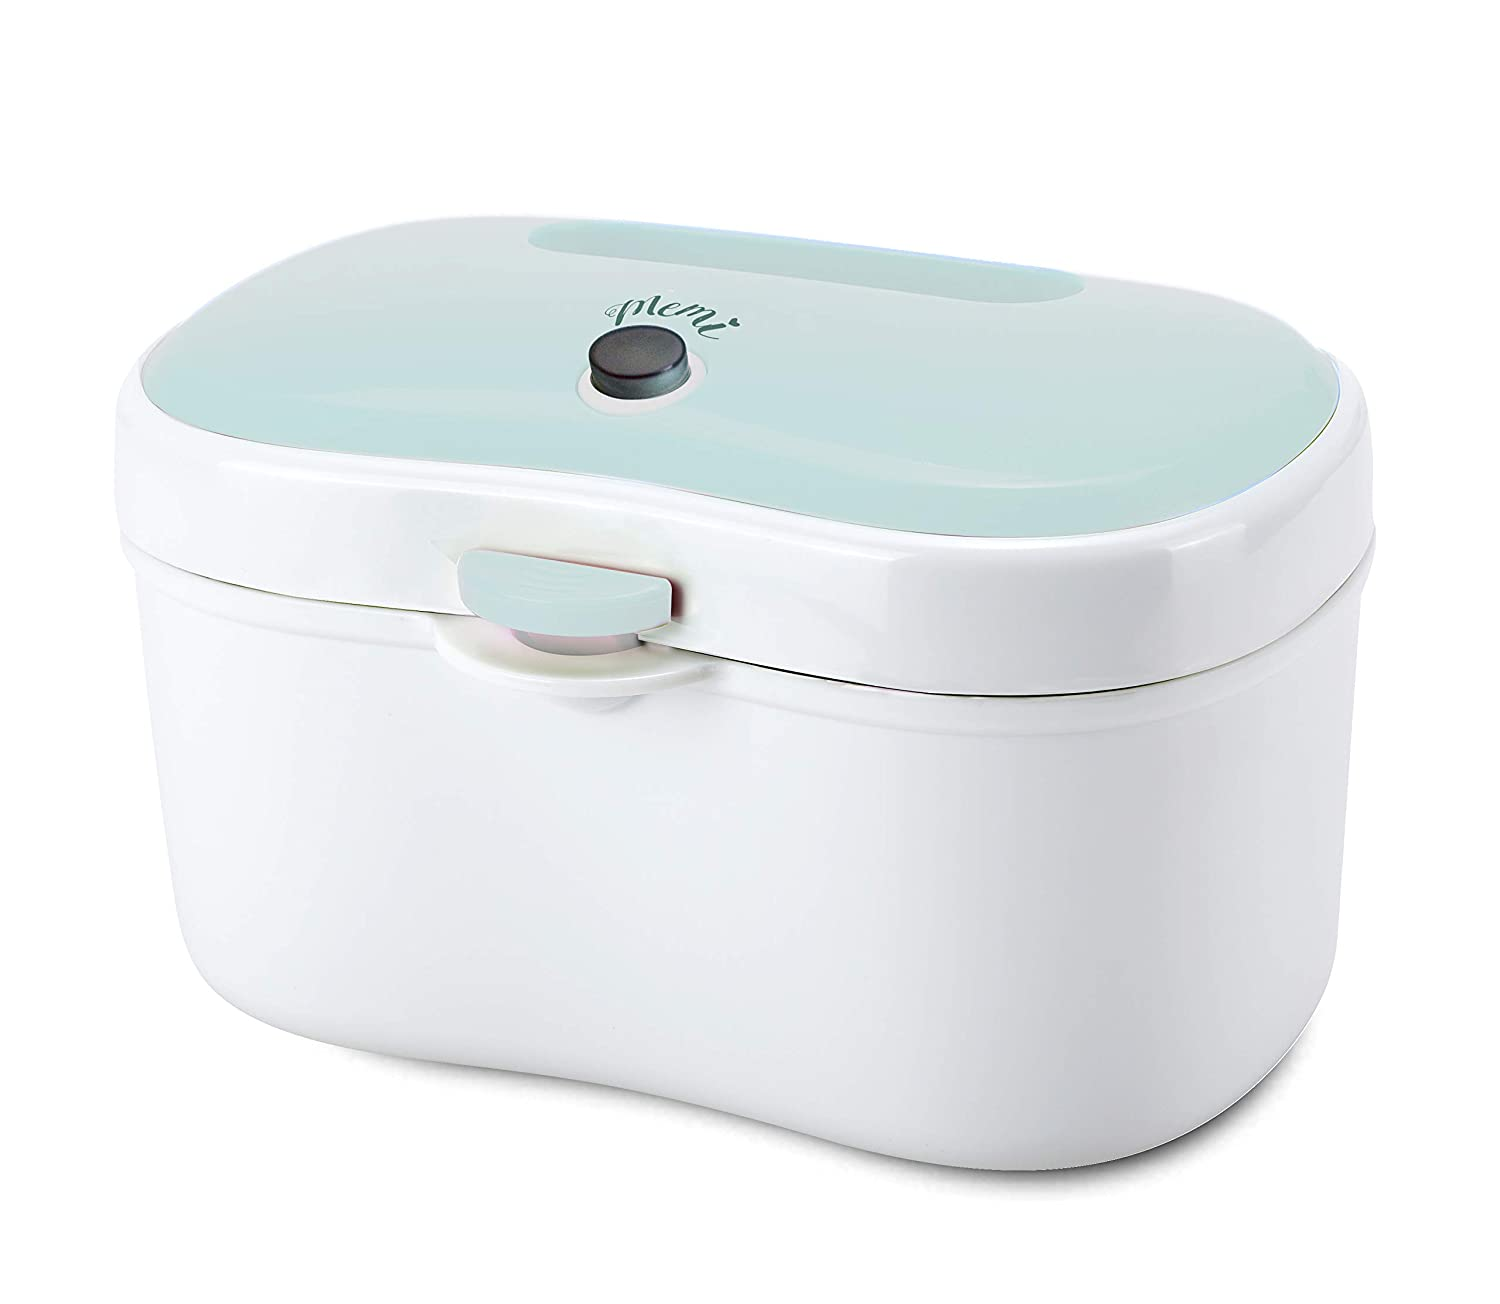 MEMI Green Wipe Warmer and Portable Wipe Holder | High Capacity | USB Charging | Baby Gift (GREEN) ELECTRIC APPLIANCES CO.